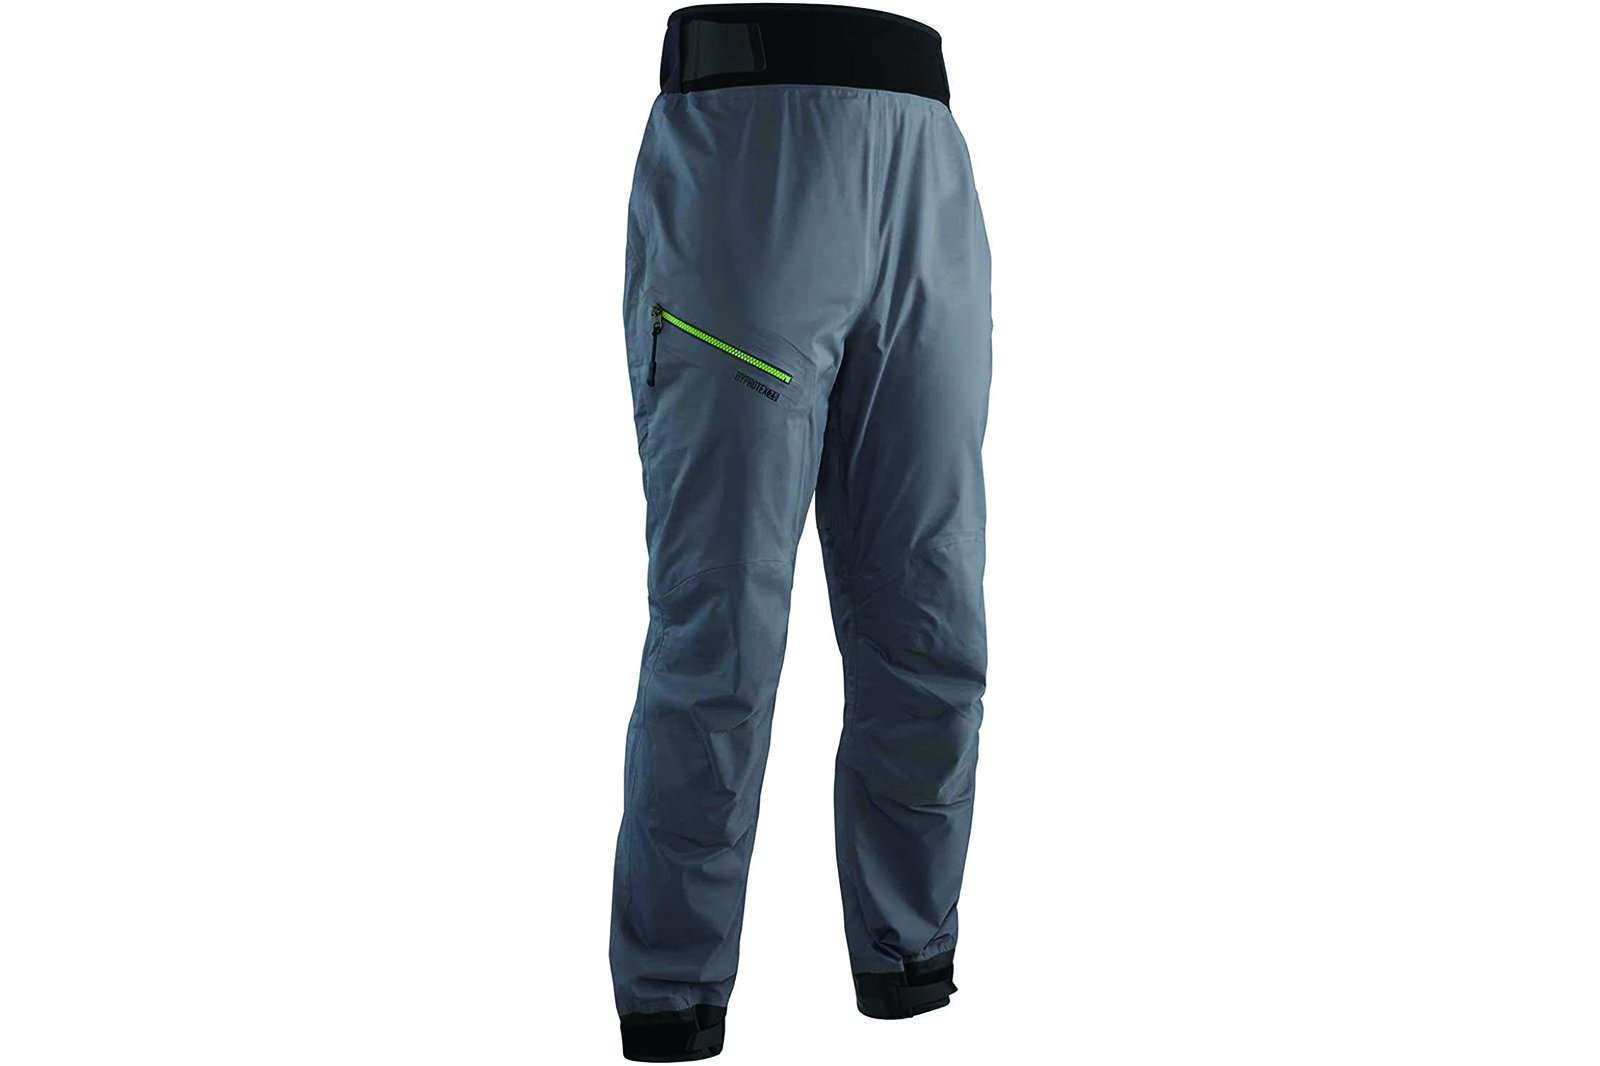 <img class='new_mark_img1' src='https://img.shop-pro.jp/img/new/icons57.gif' style='border:none;display:inline;margin:0px;padding:0px;width:auto;' />NRS M's Endurance Pant Gunmetal (20015)